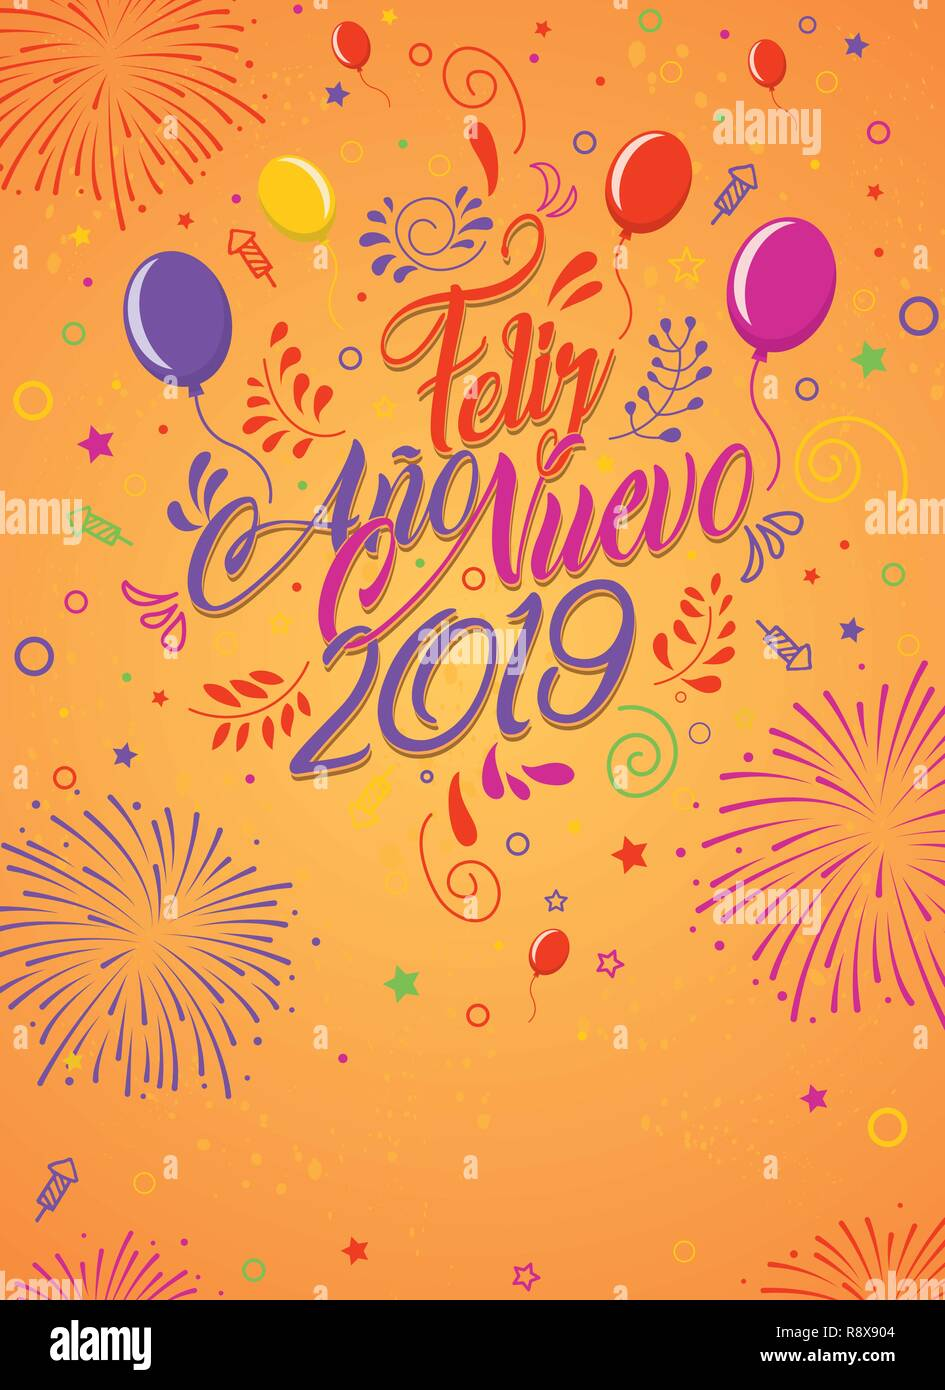 Greeting card with the message: Feliz Ano Nuevo 2019 - Happy New Year 2019 in Spanish language - Card decorated with balloons, stars and fireworks of - Stock Image